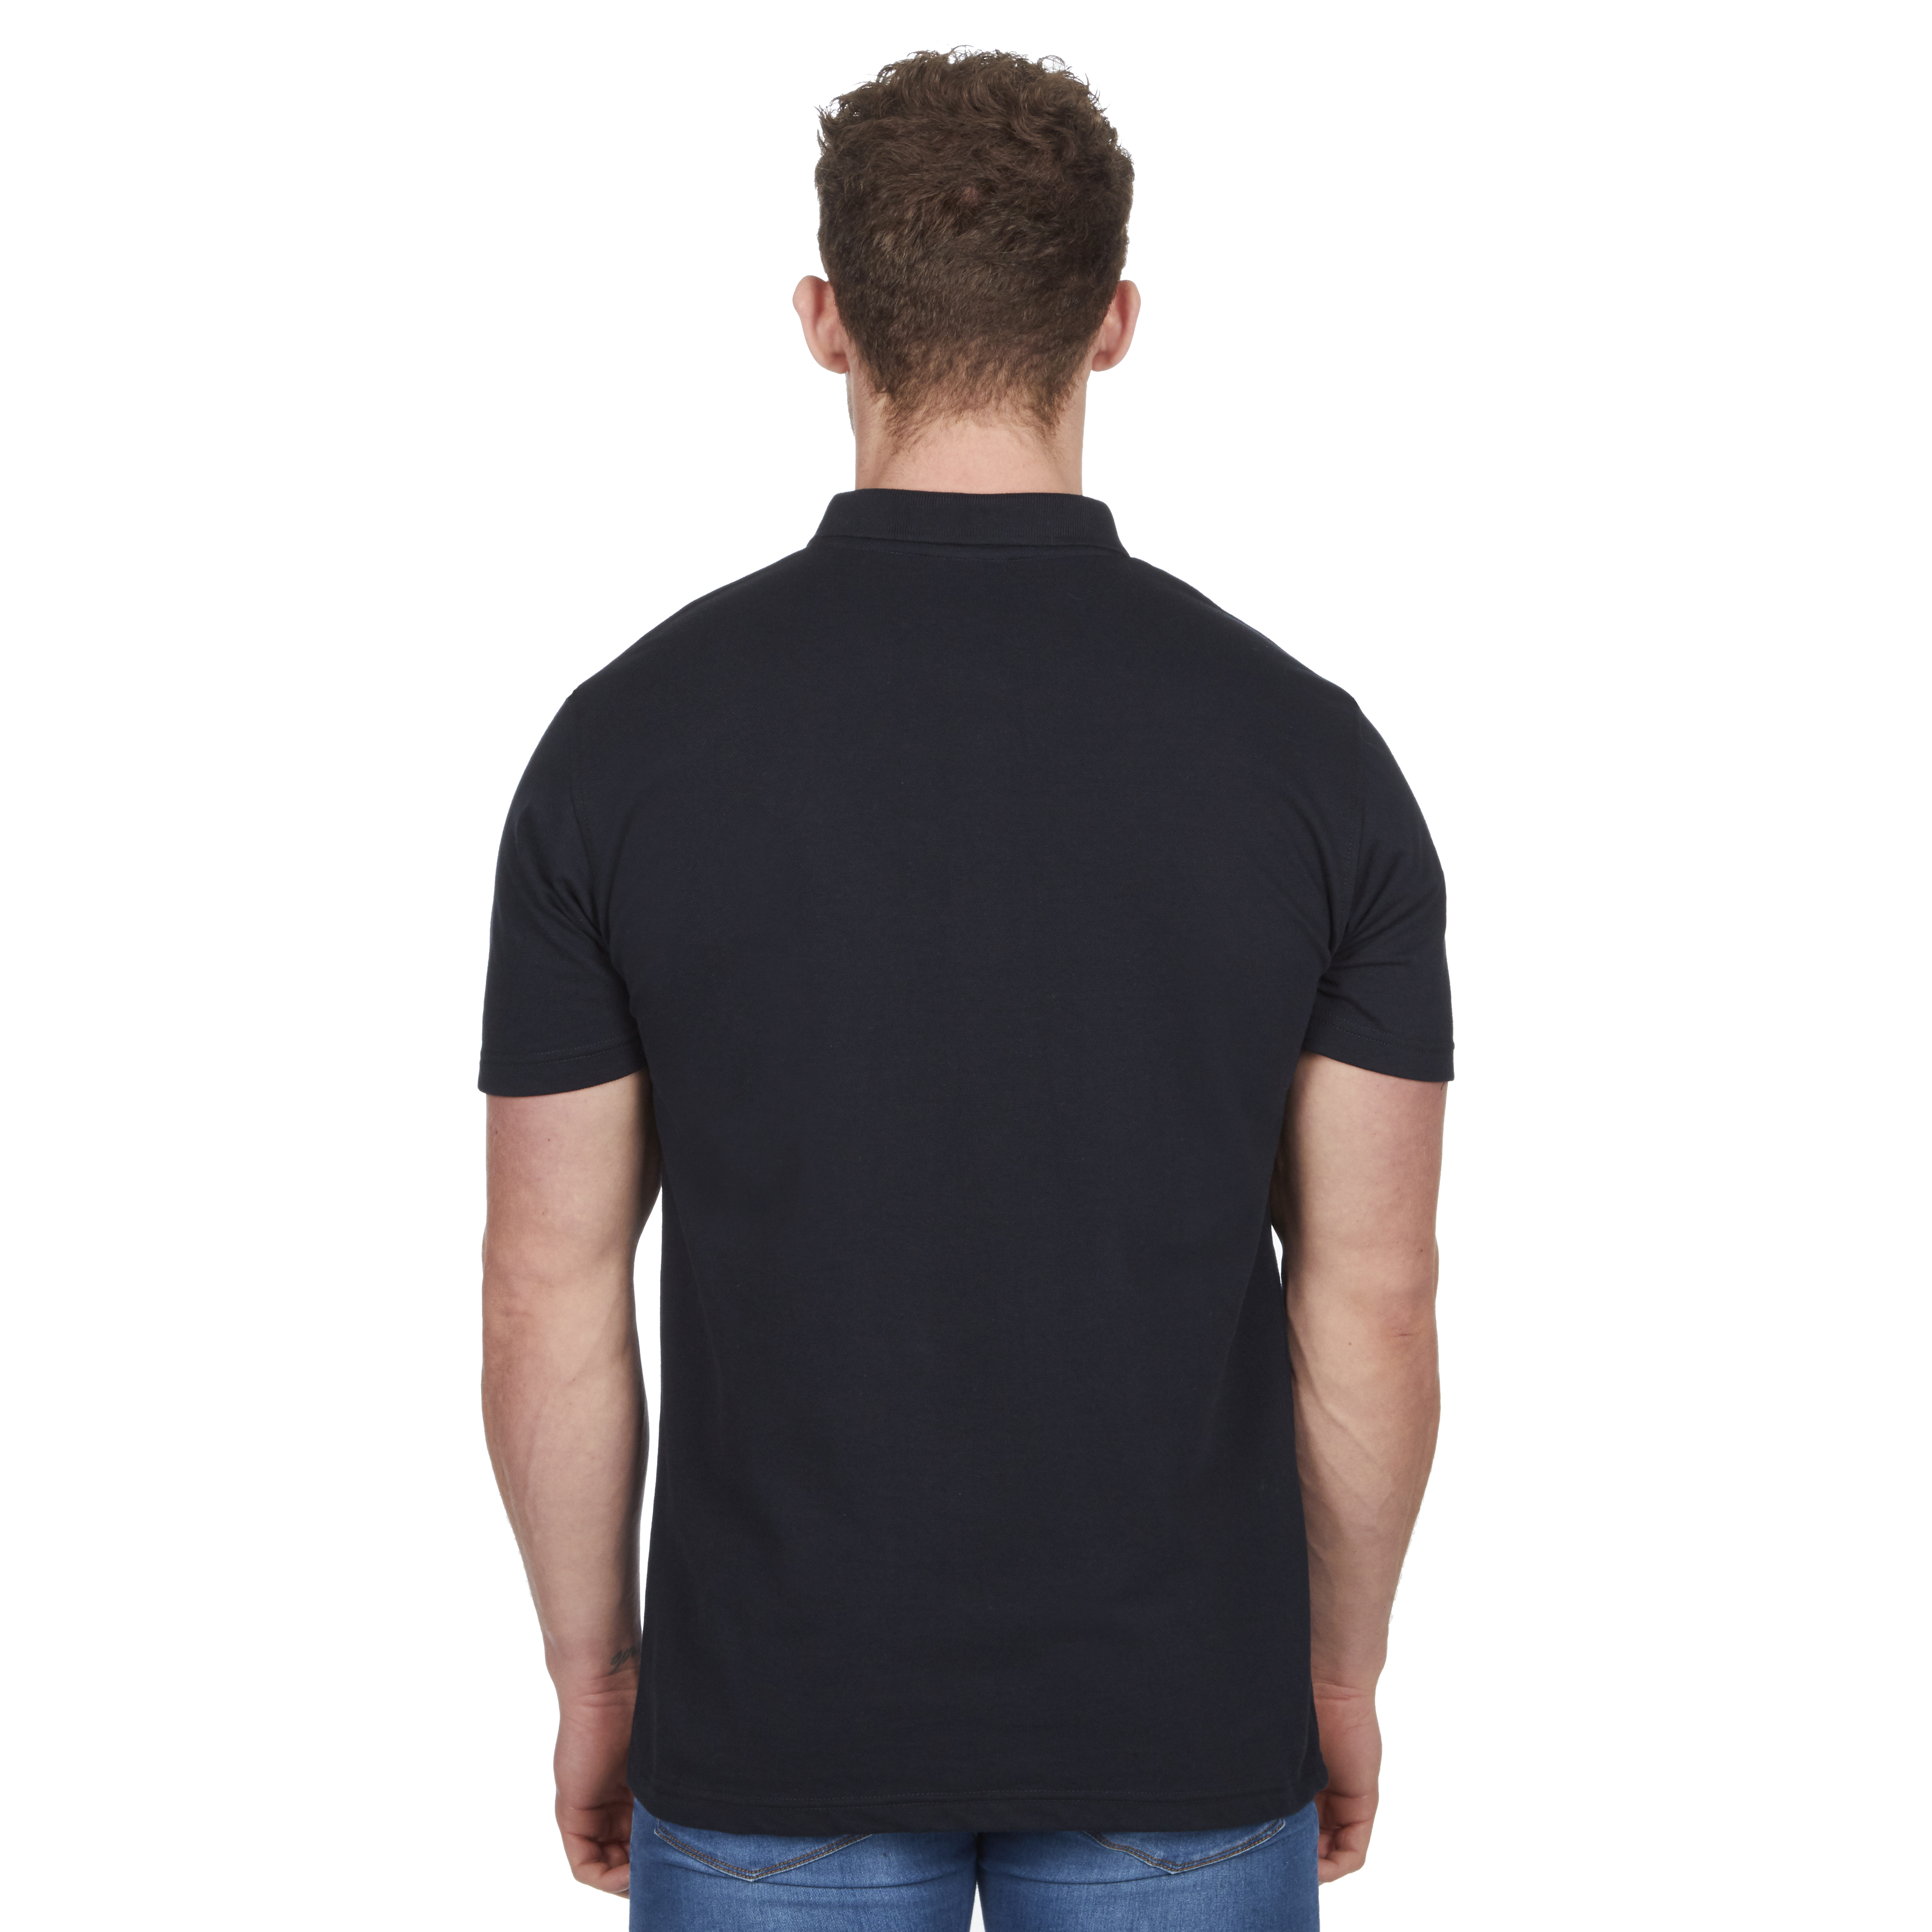 Mens-Classic-Polo-Top-Plus-Size-T-Shirt-Plain-Shirt-Big-And-Tall-Short-Sleeve thumbnail 14